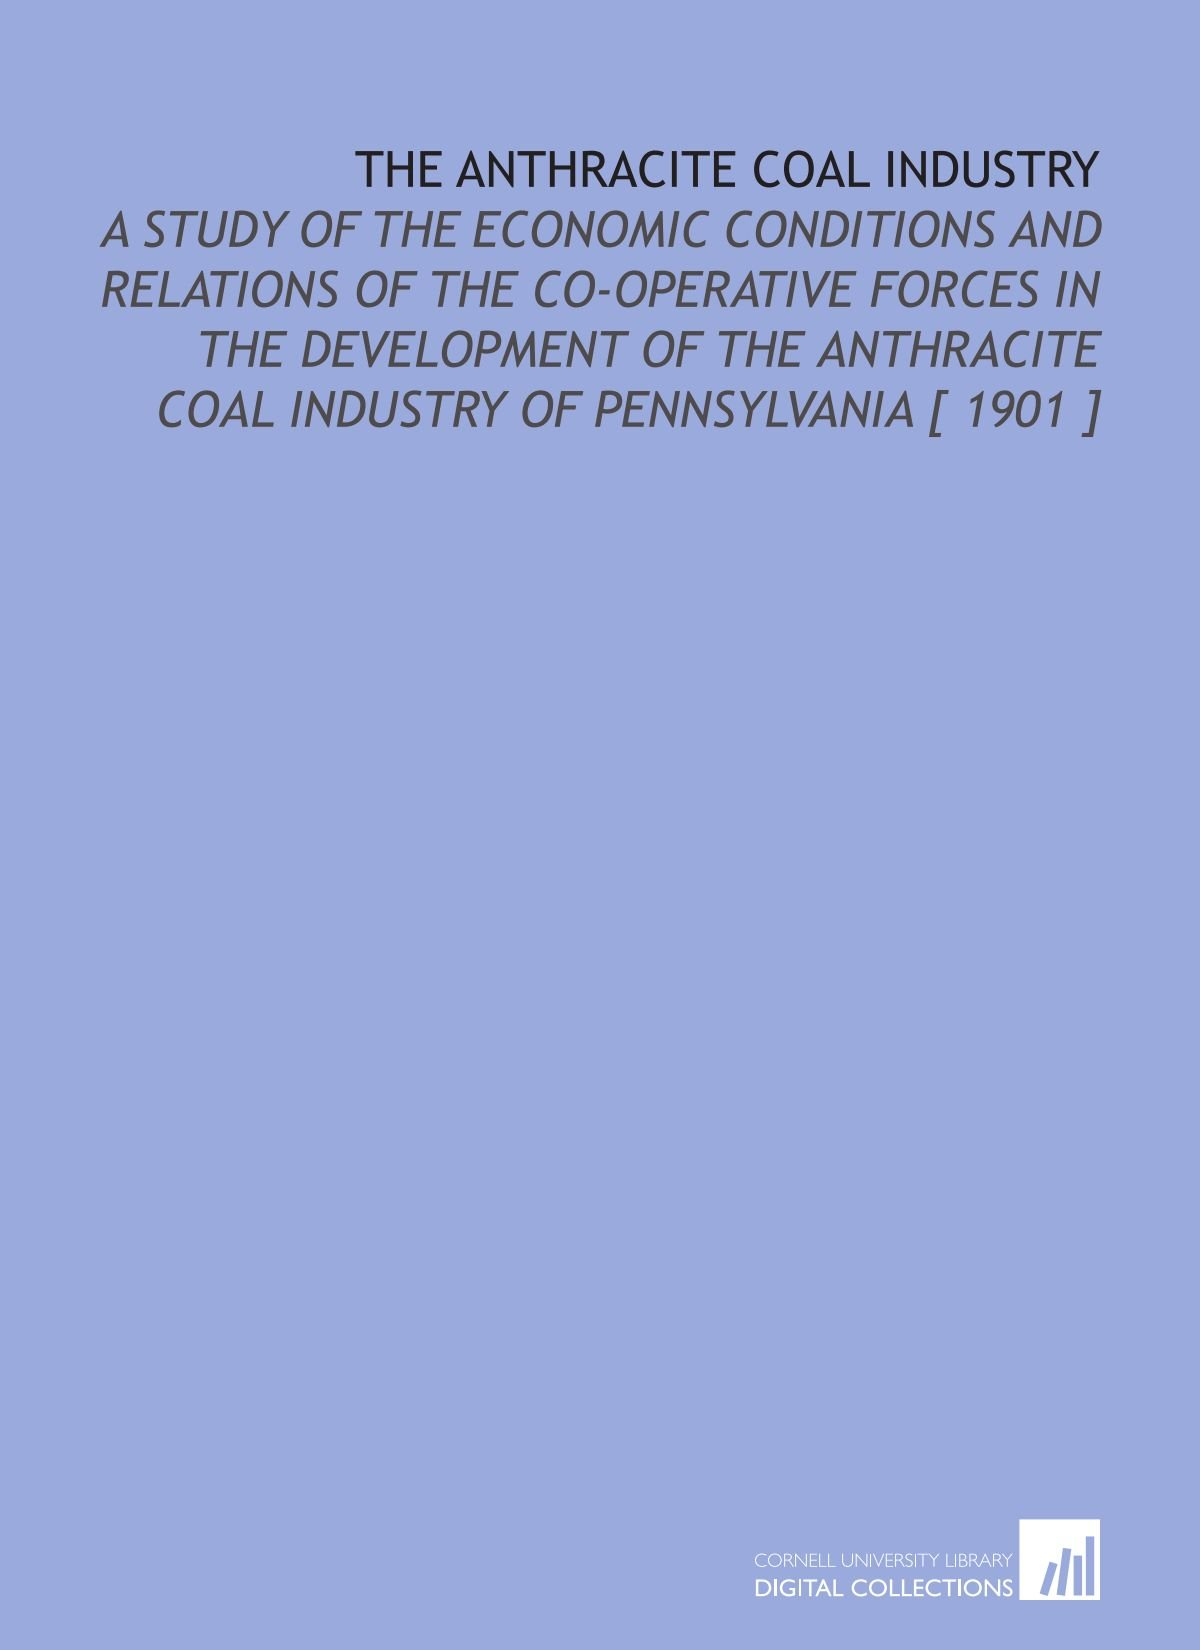 The Anthracite Coal Industry: A Study of the Economic Conditions and Relations of the Co-Operative Forces in the Development of the Anthracite Coal Industry of Pennsylvania [ 1901 ] pdf